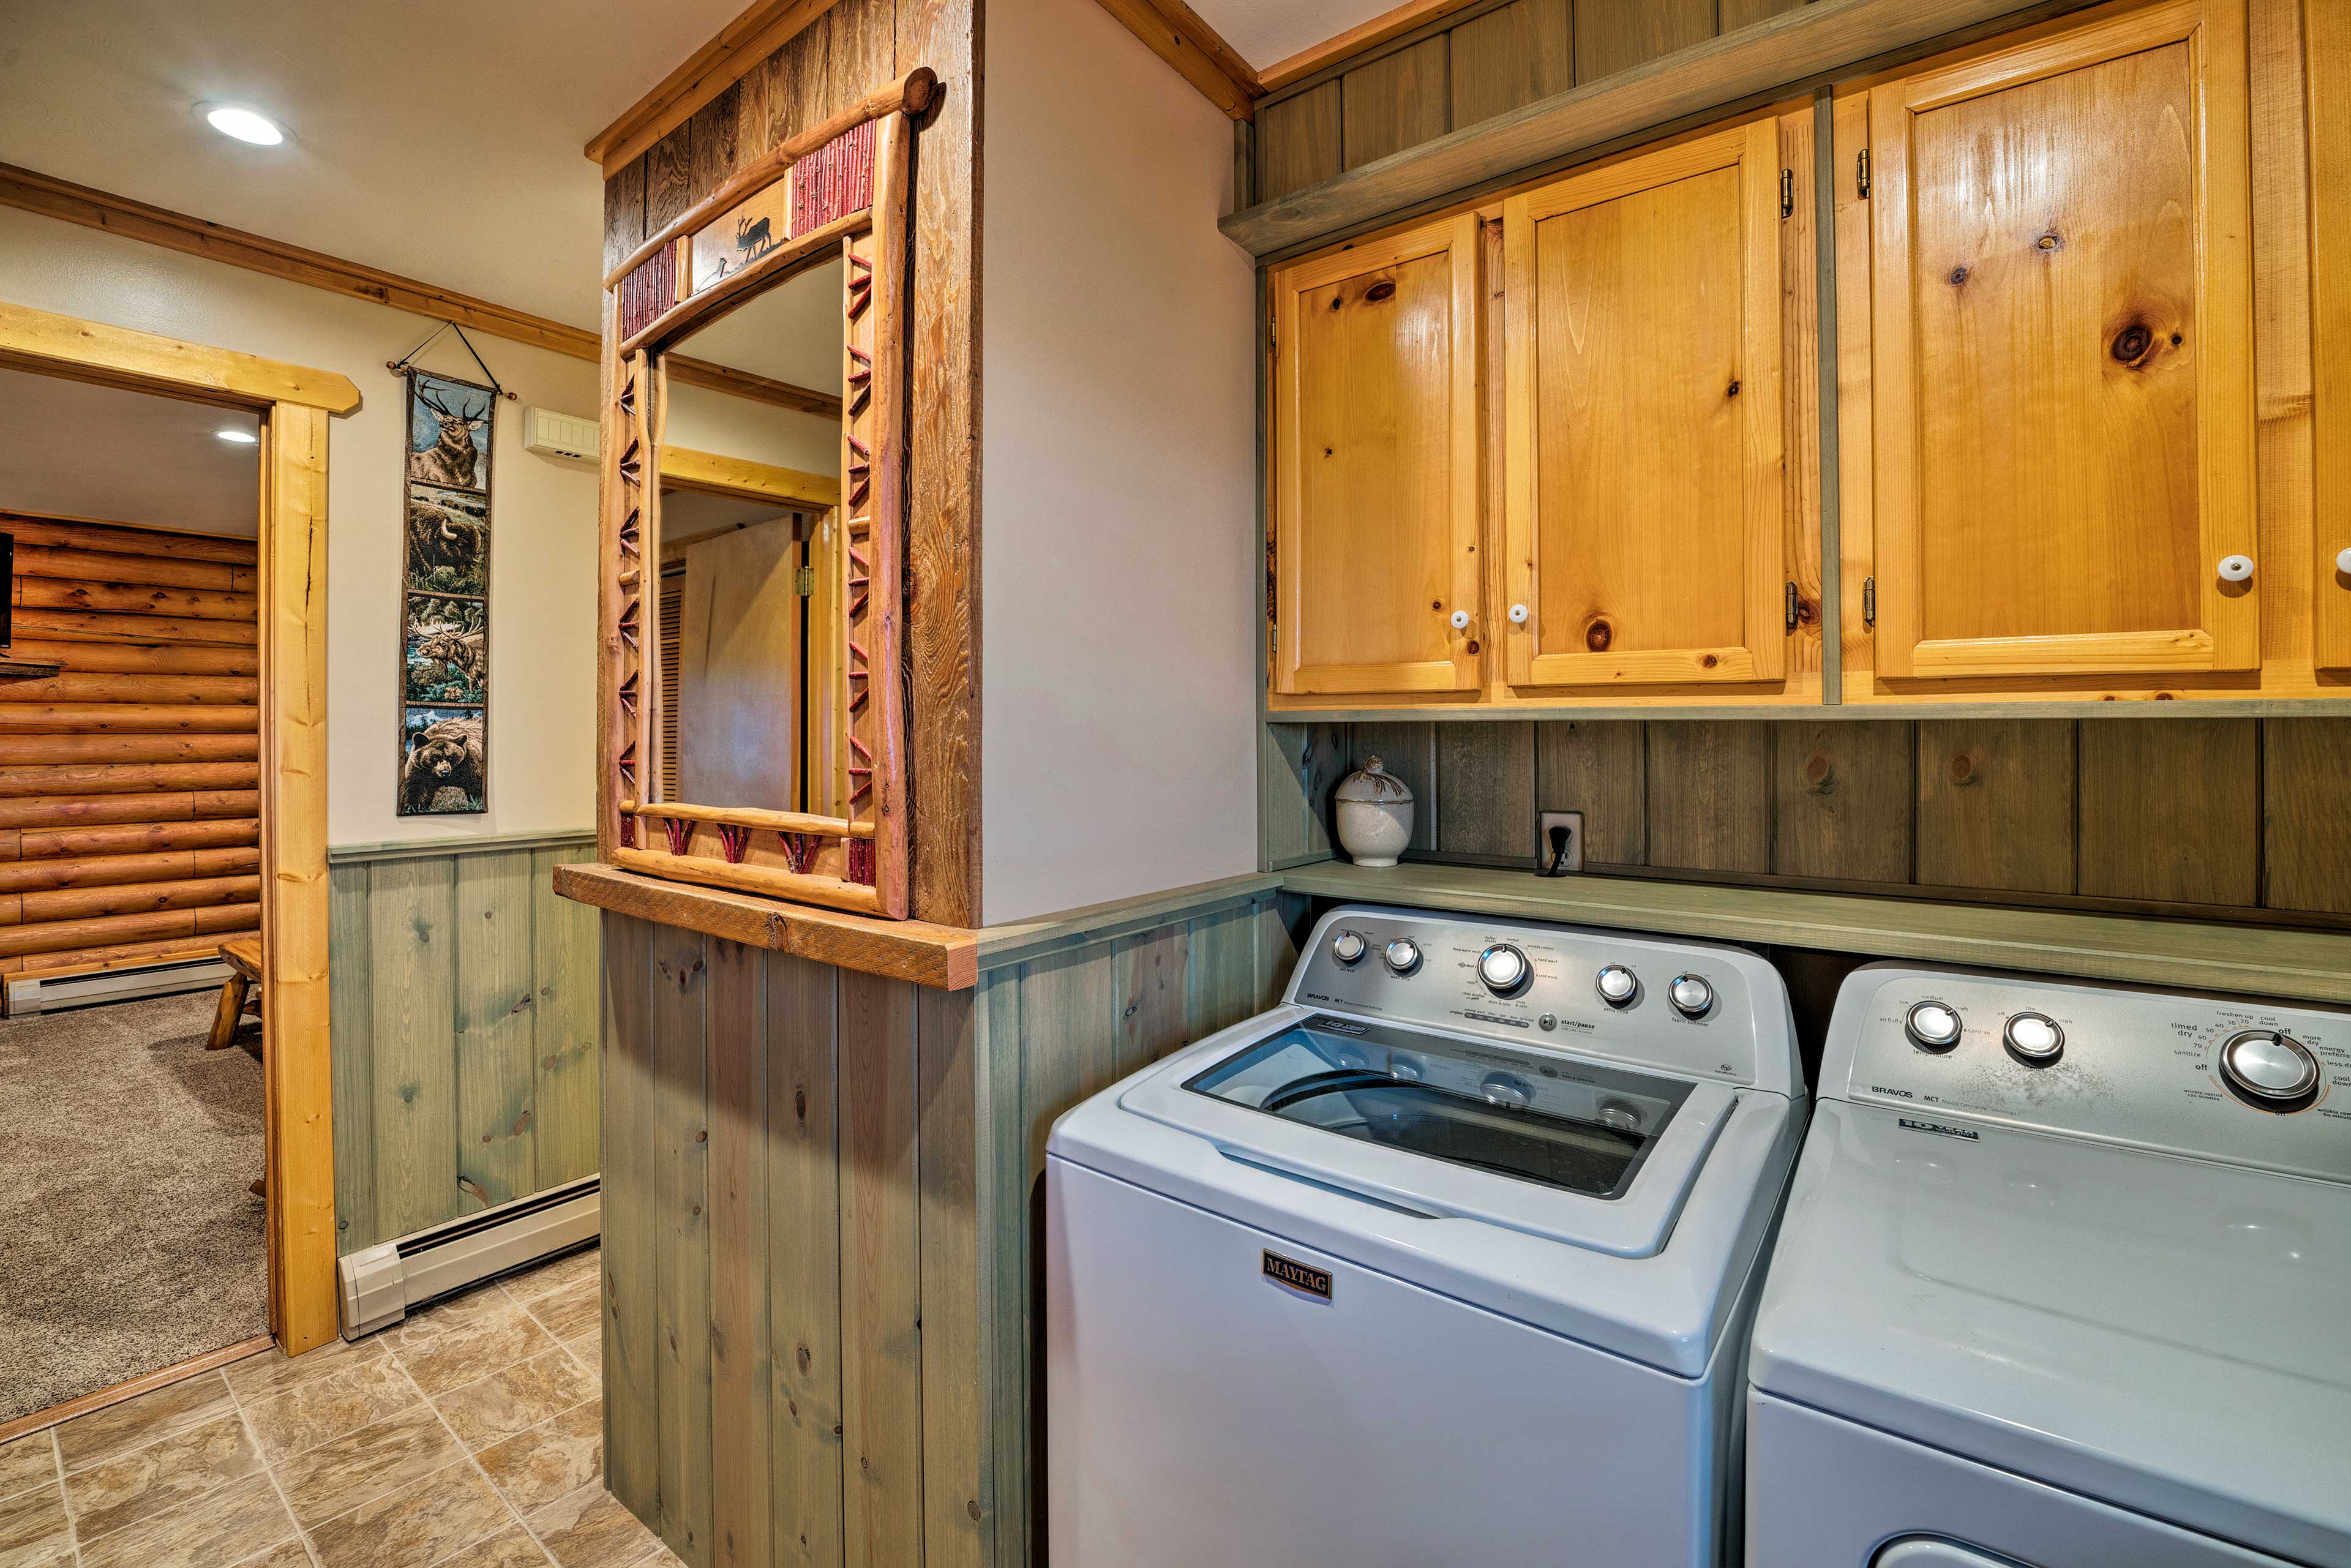 The washer and dryer, located in the hallway, will keep all your clothes clean.